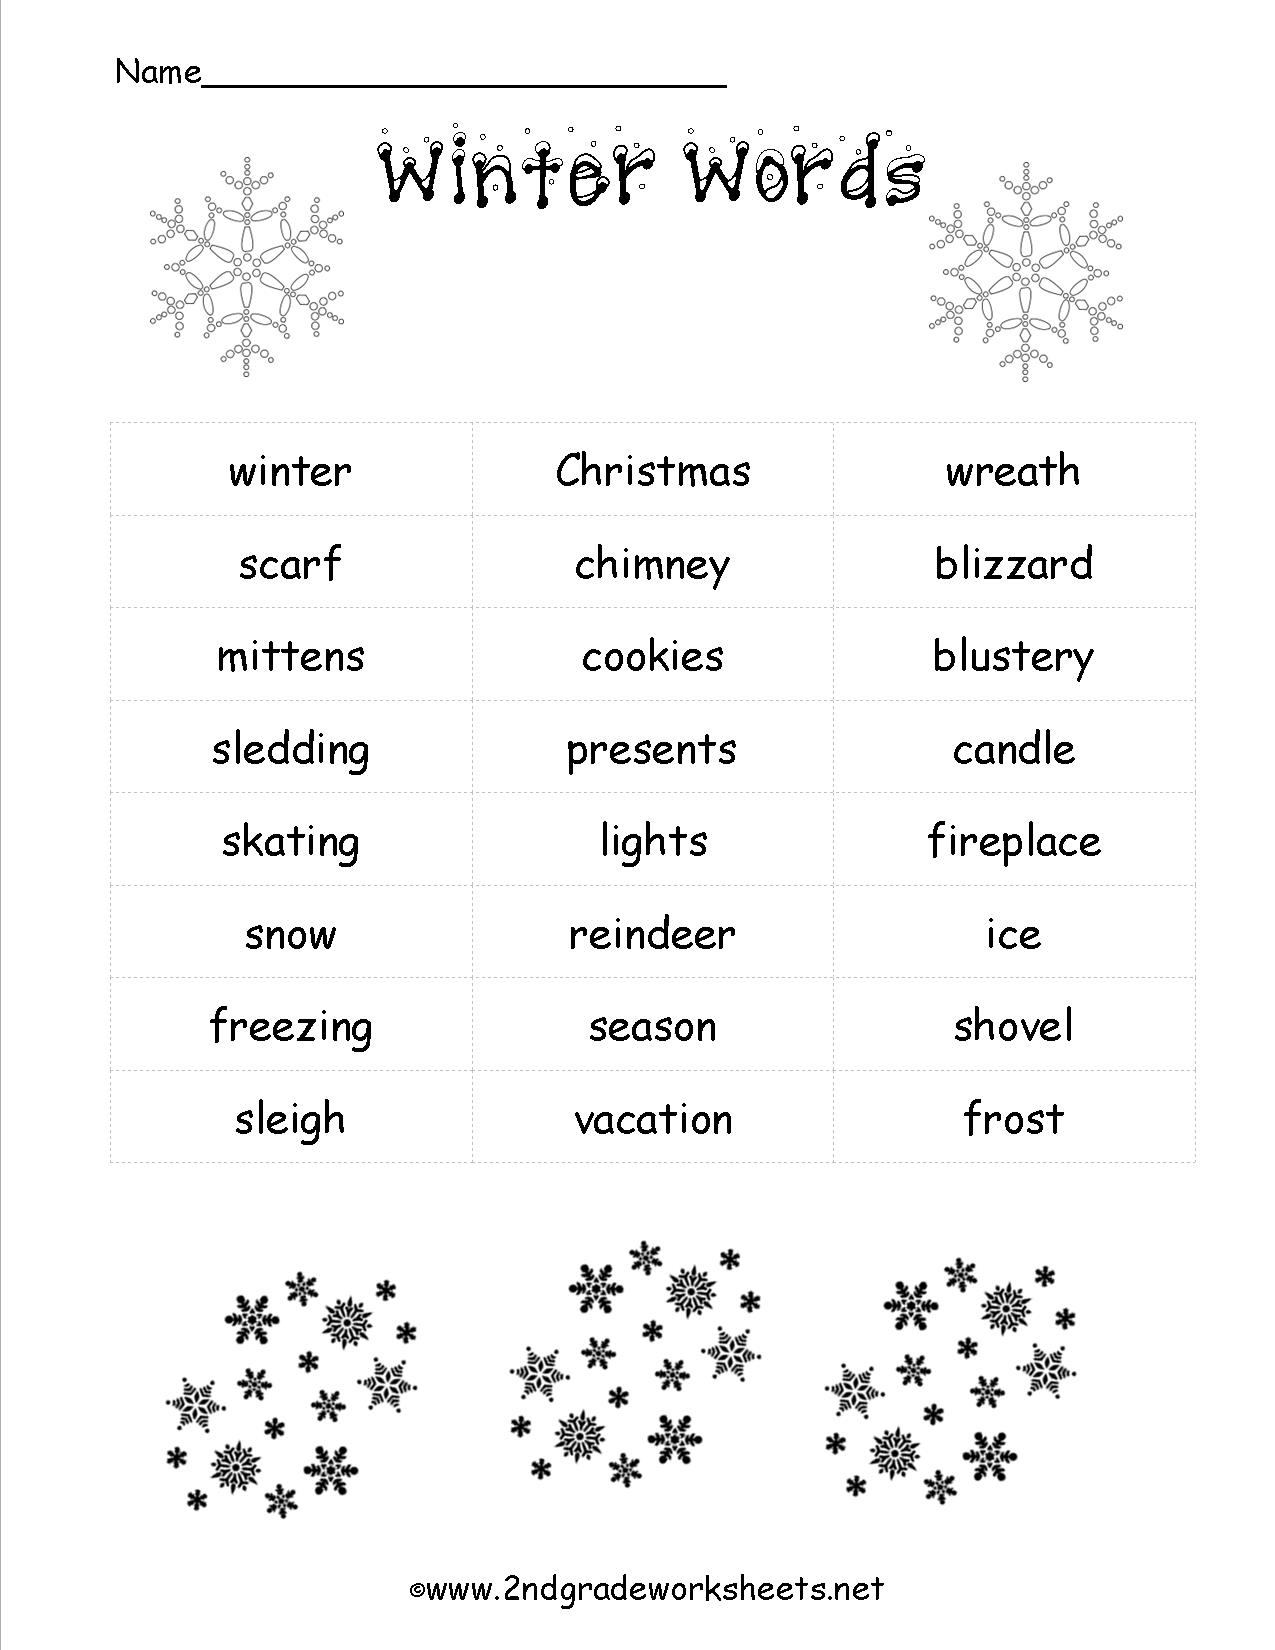 Worksheet About Weather For Grade 2